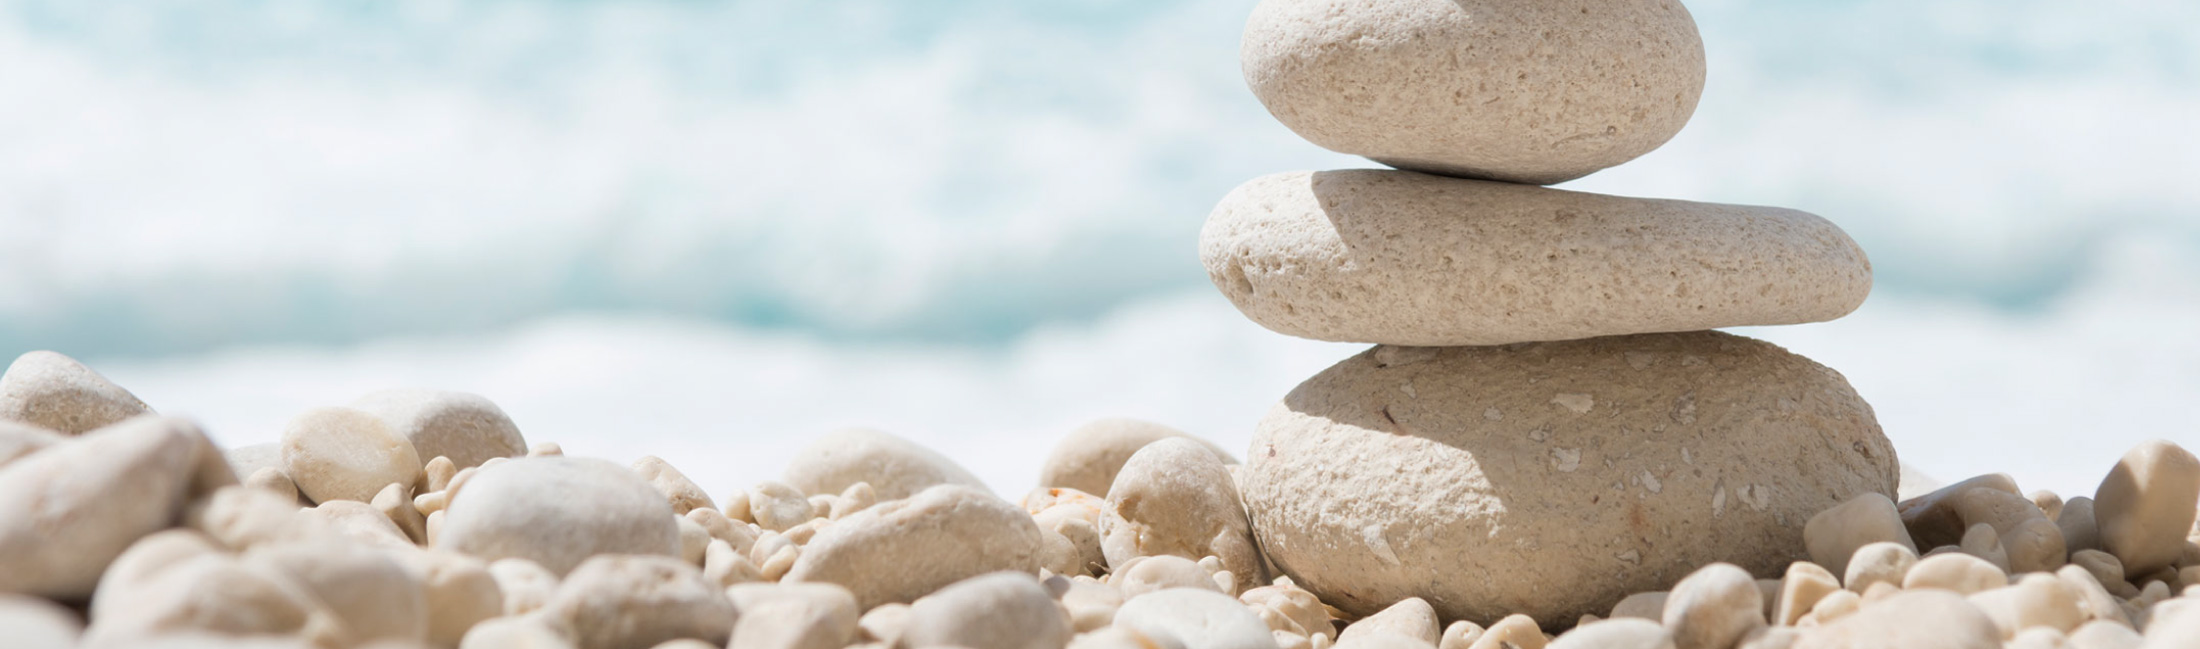 Balanced Pharma background - stones balanced on beach